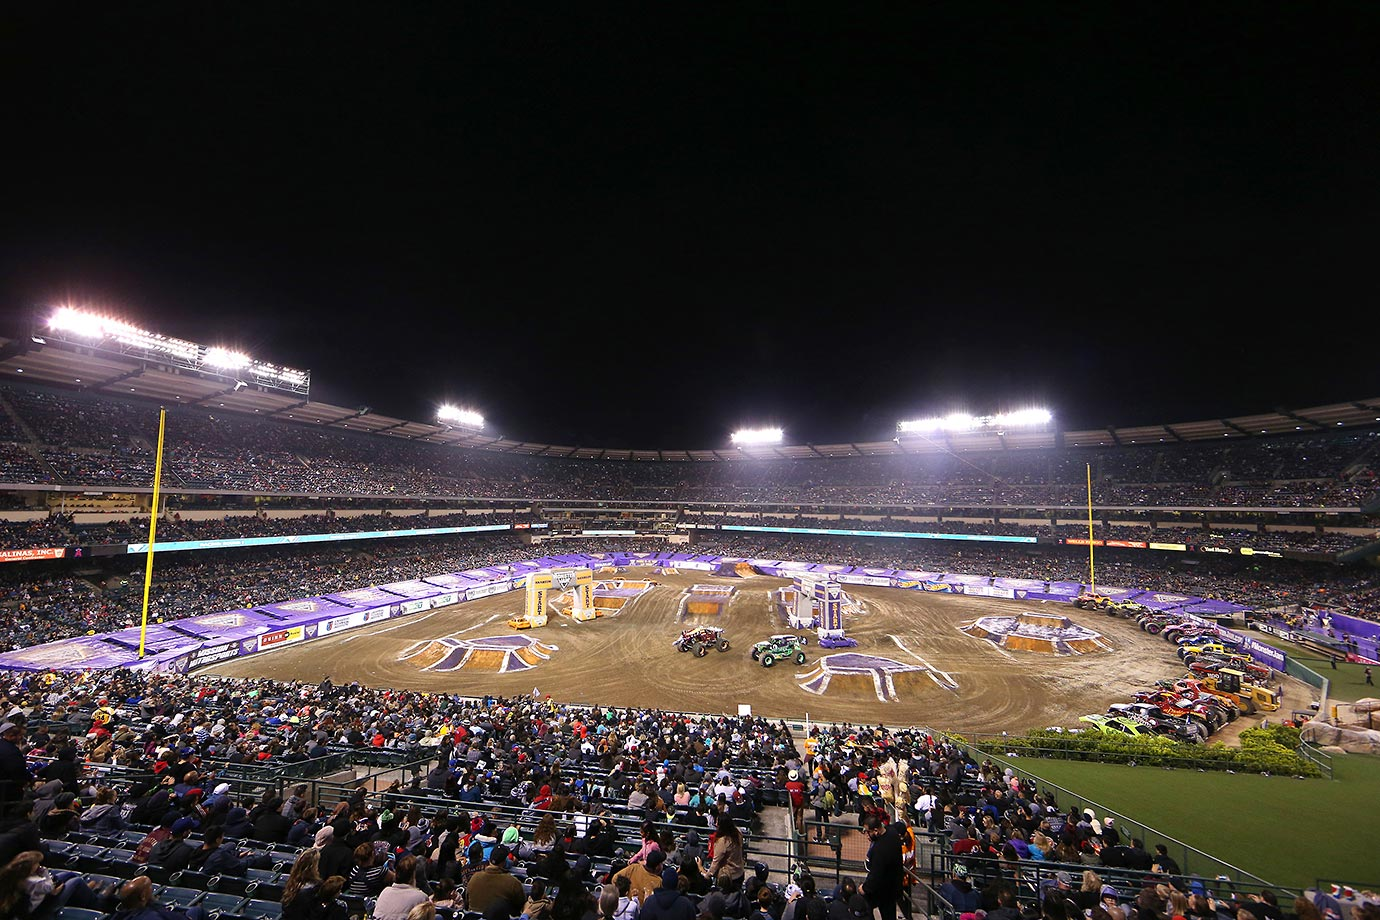 Grave Digger and Max-D hit the dirt track in front of a packed house at Angels Stadium.